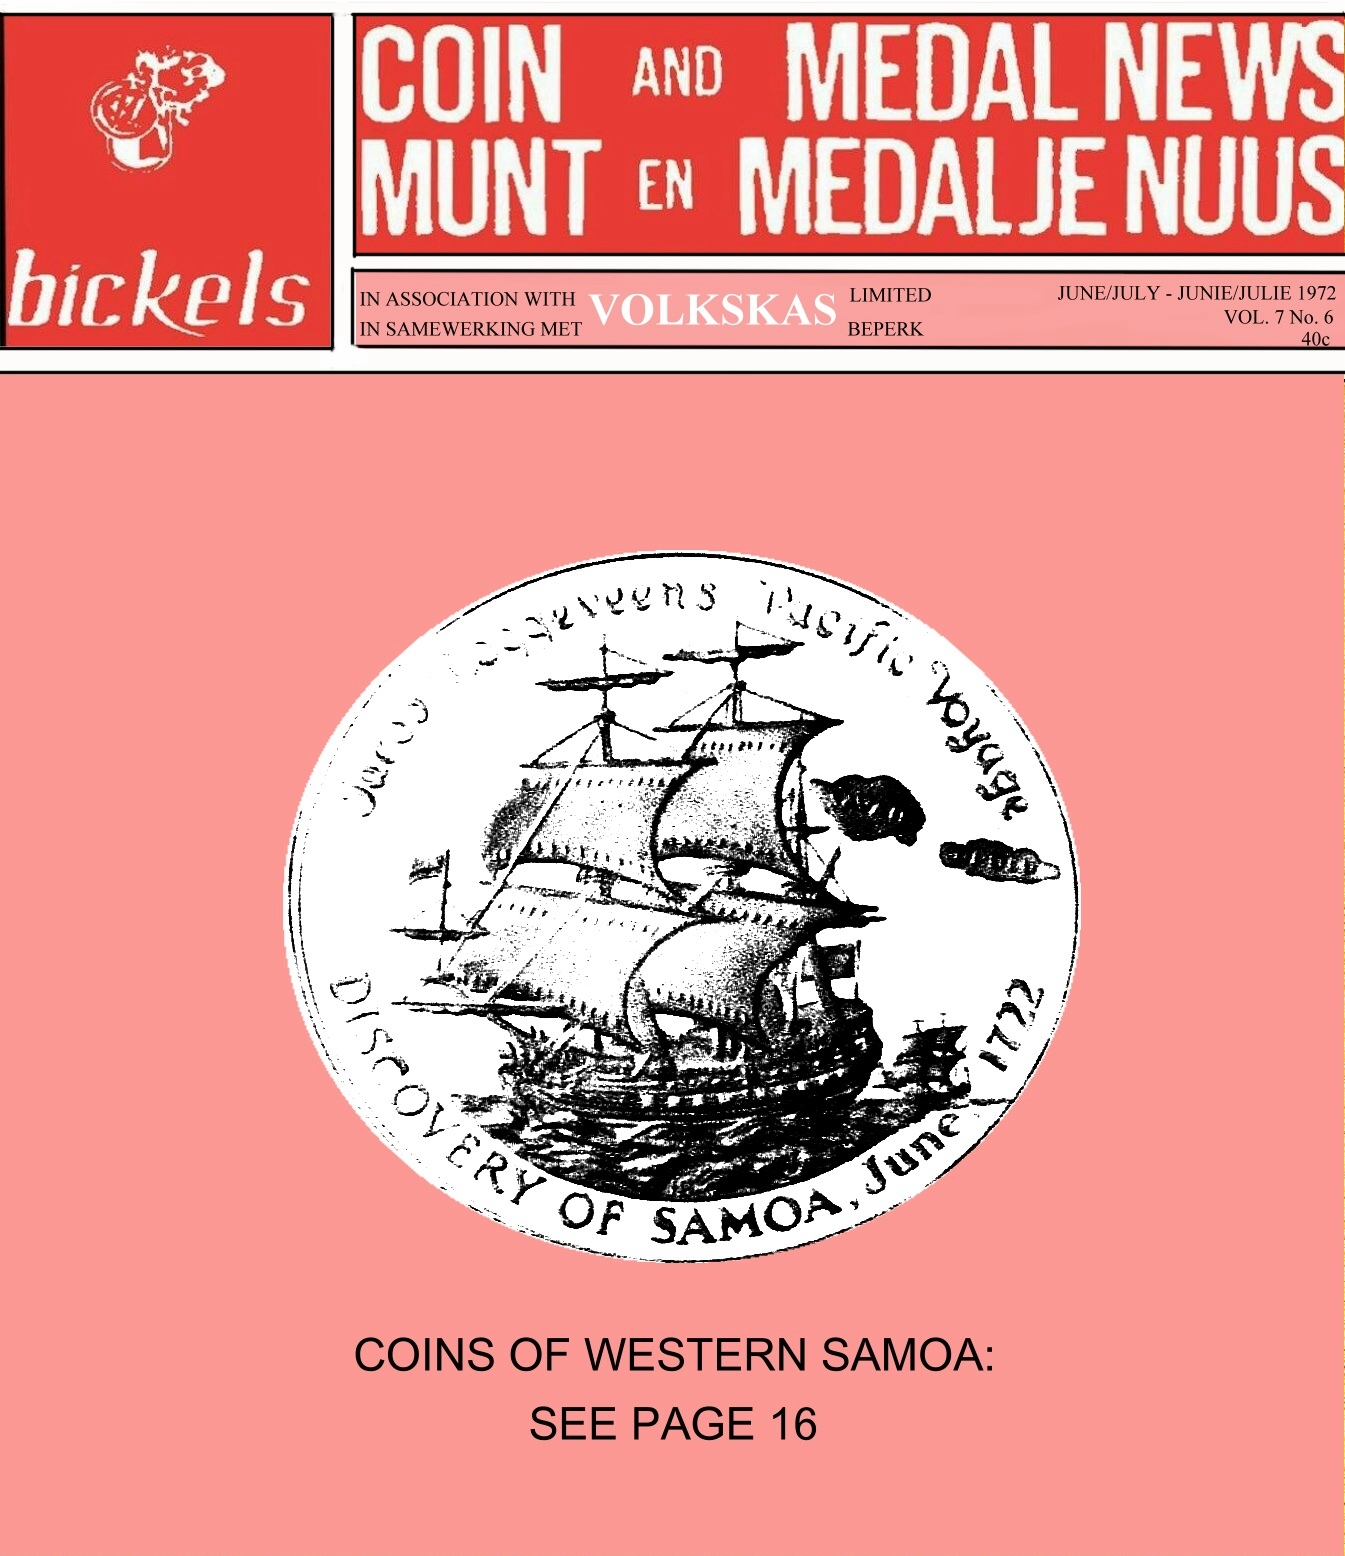 Bickels Coin & Medal News June July 1972 Vol 7 No 6